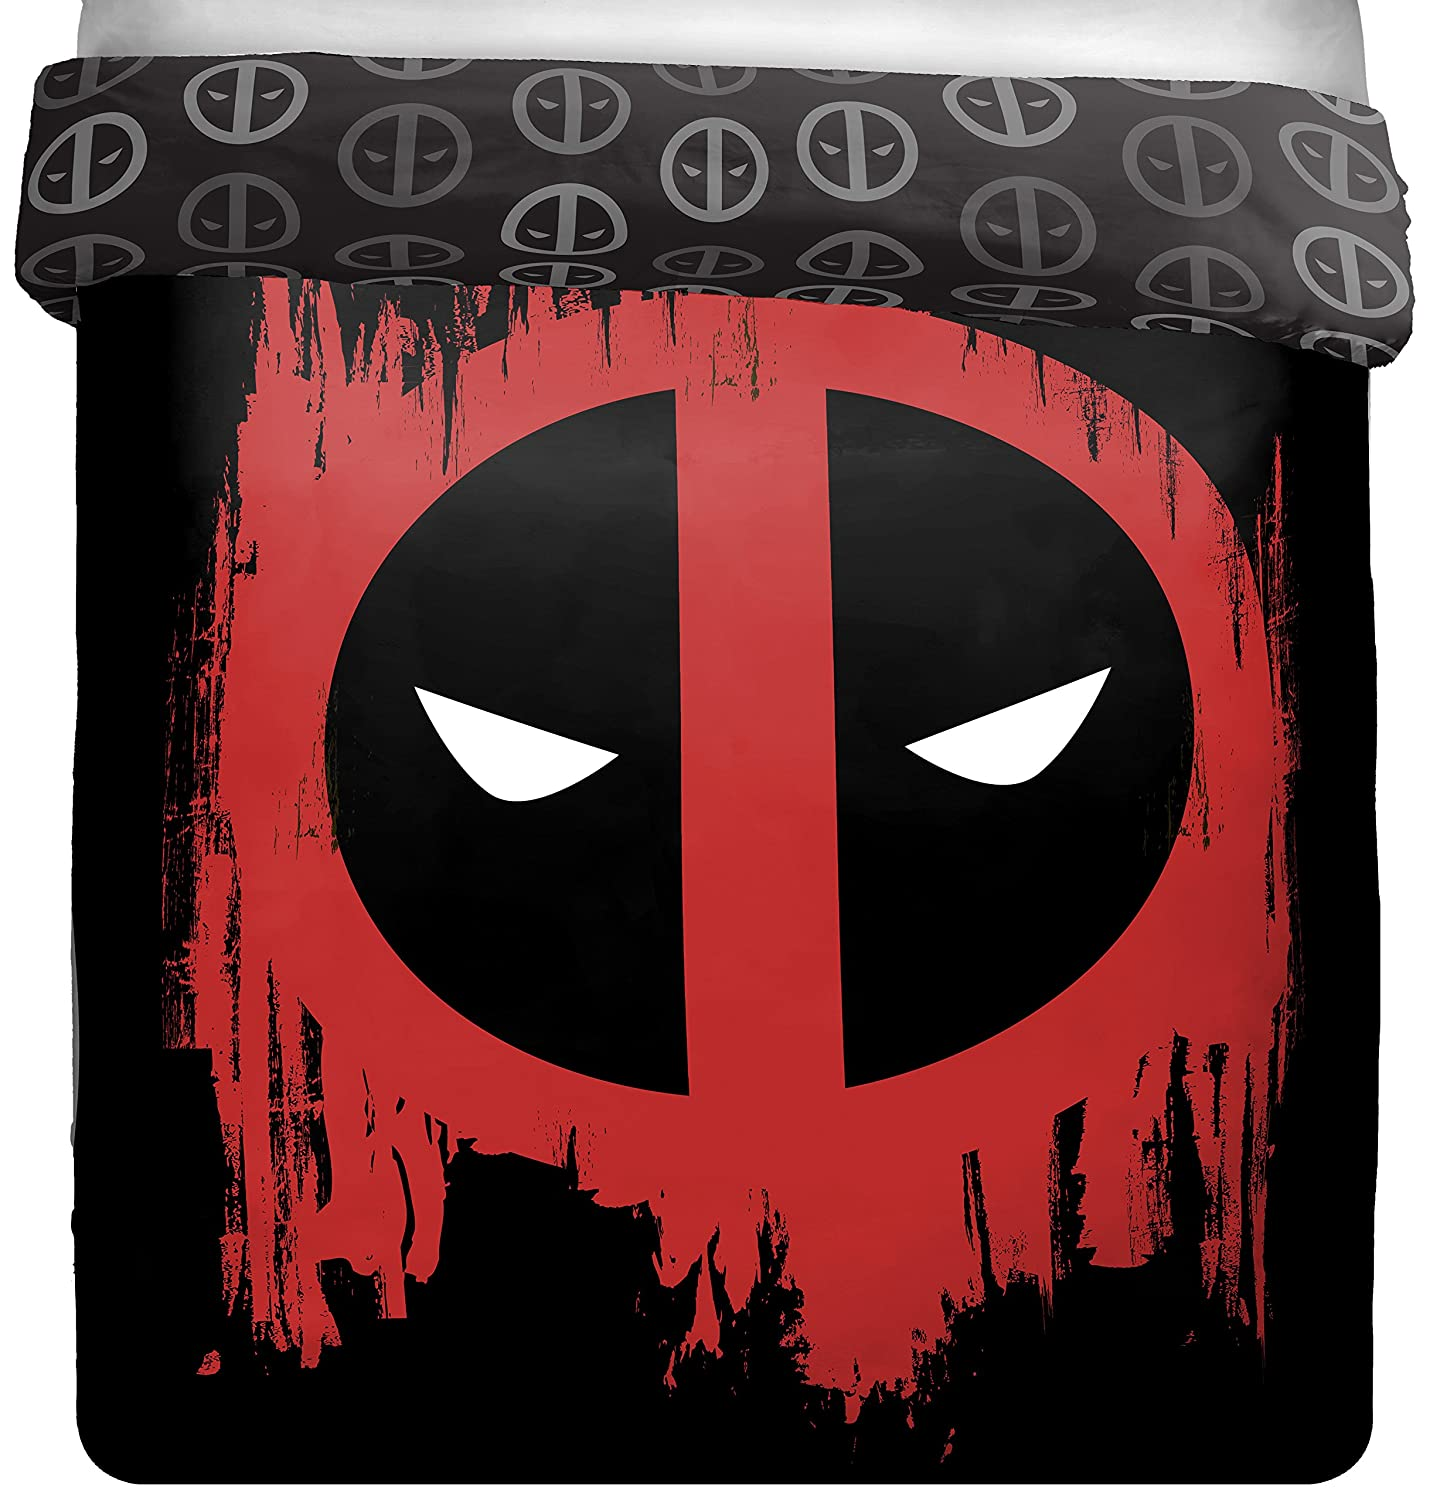 Marvel Deadpool Invasion Full/Queen Comforter - Super Soft Kids Reversible Bedding features Deadpool - Fade Resistant Polyester Microfiber Fill (Official Marvel Product)